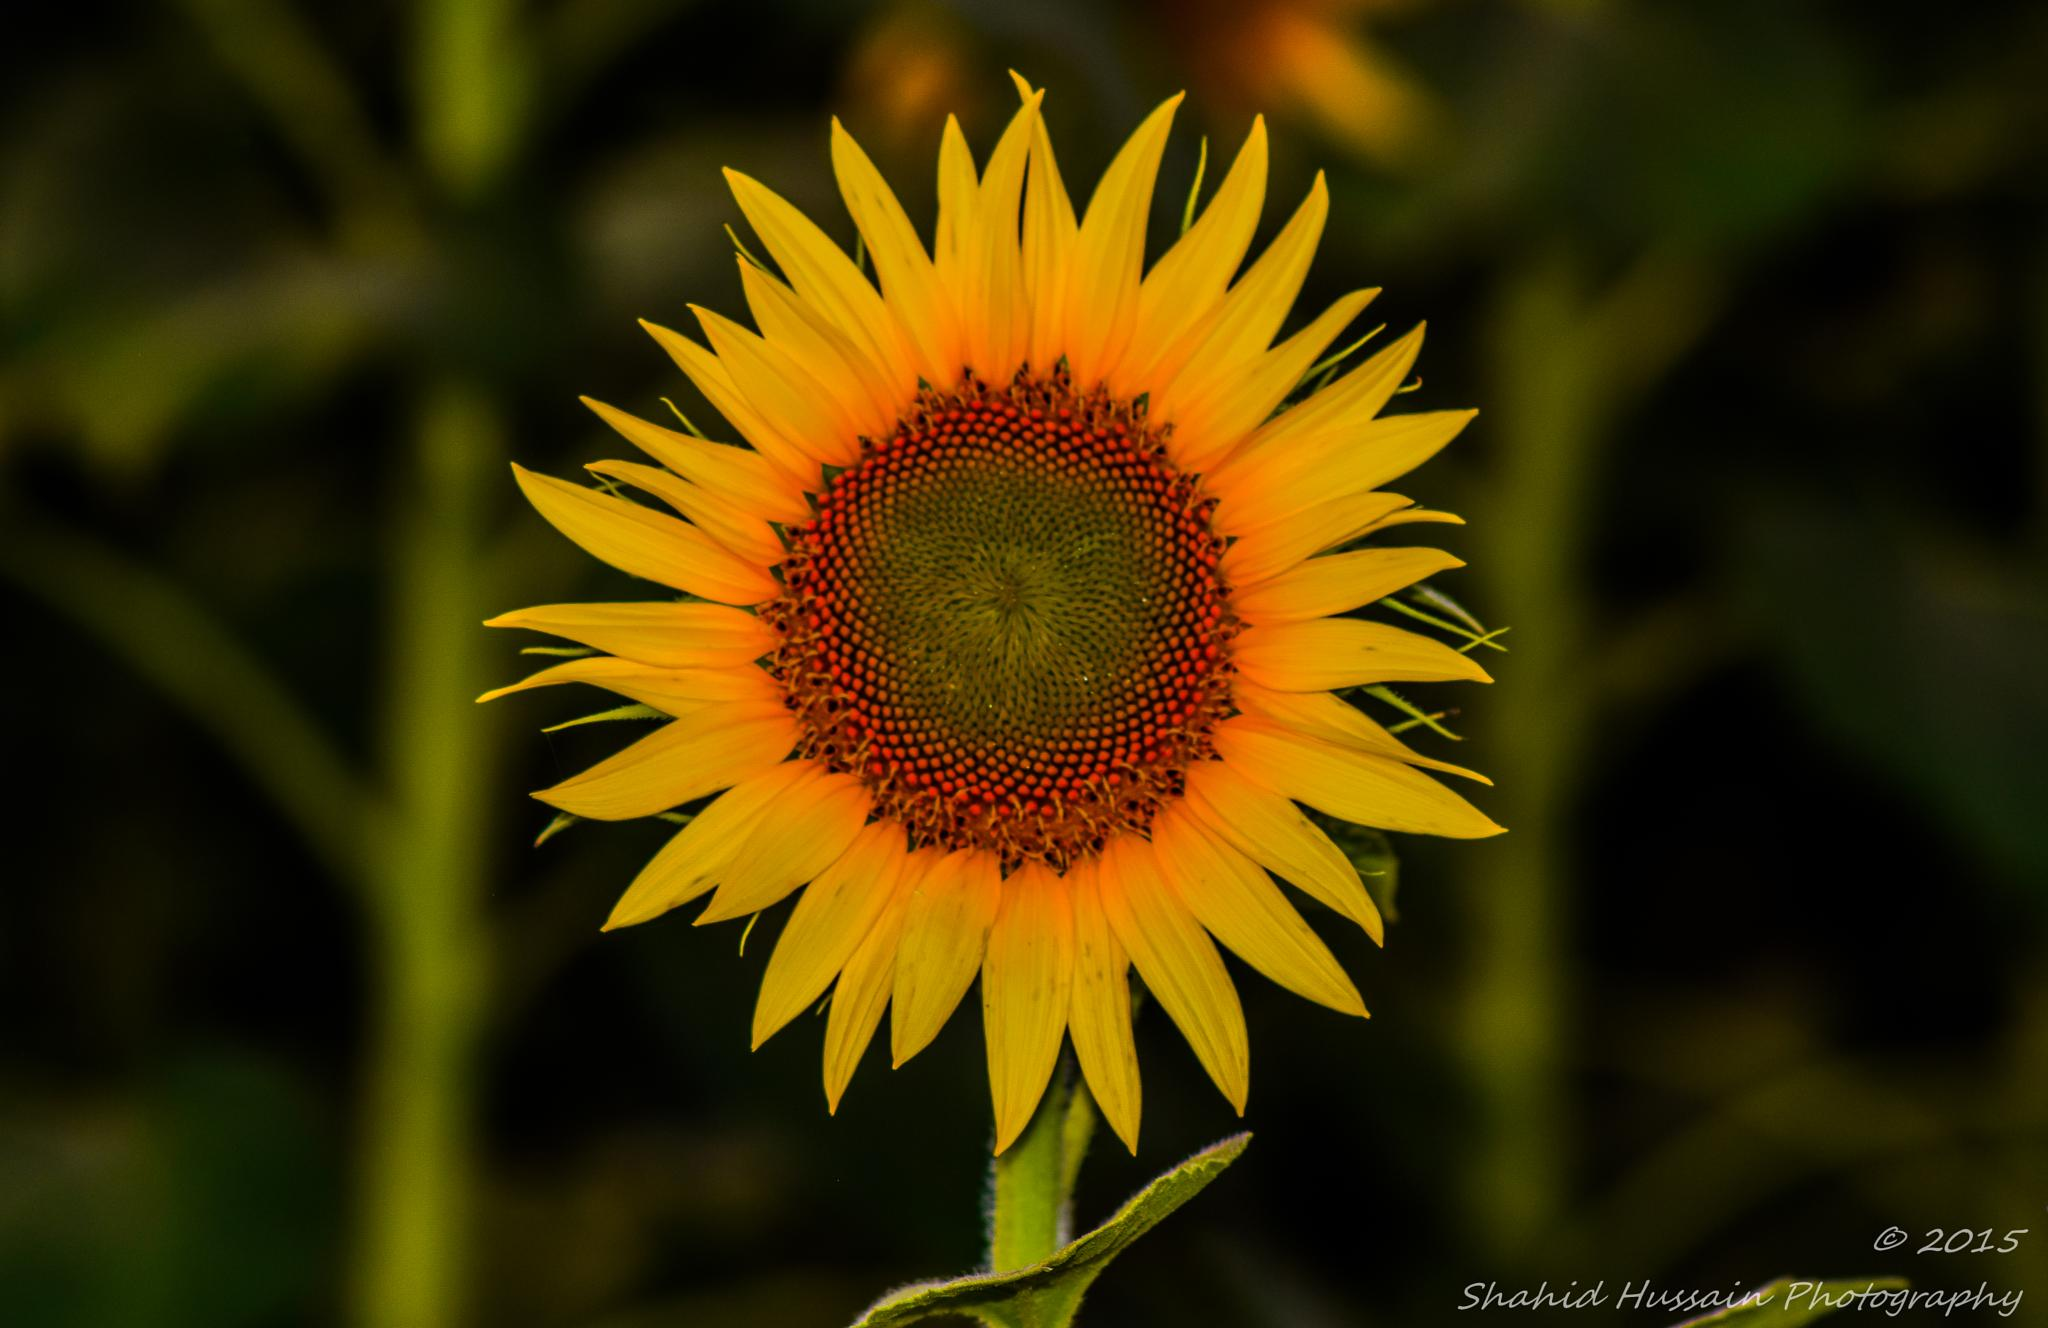 Laughing Sunflower by Shahid Hussain